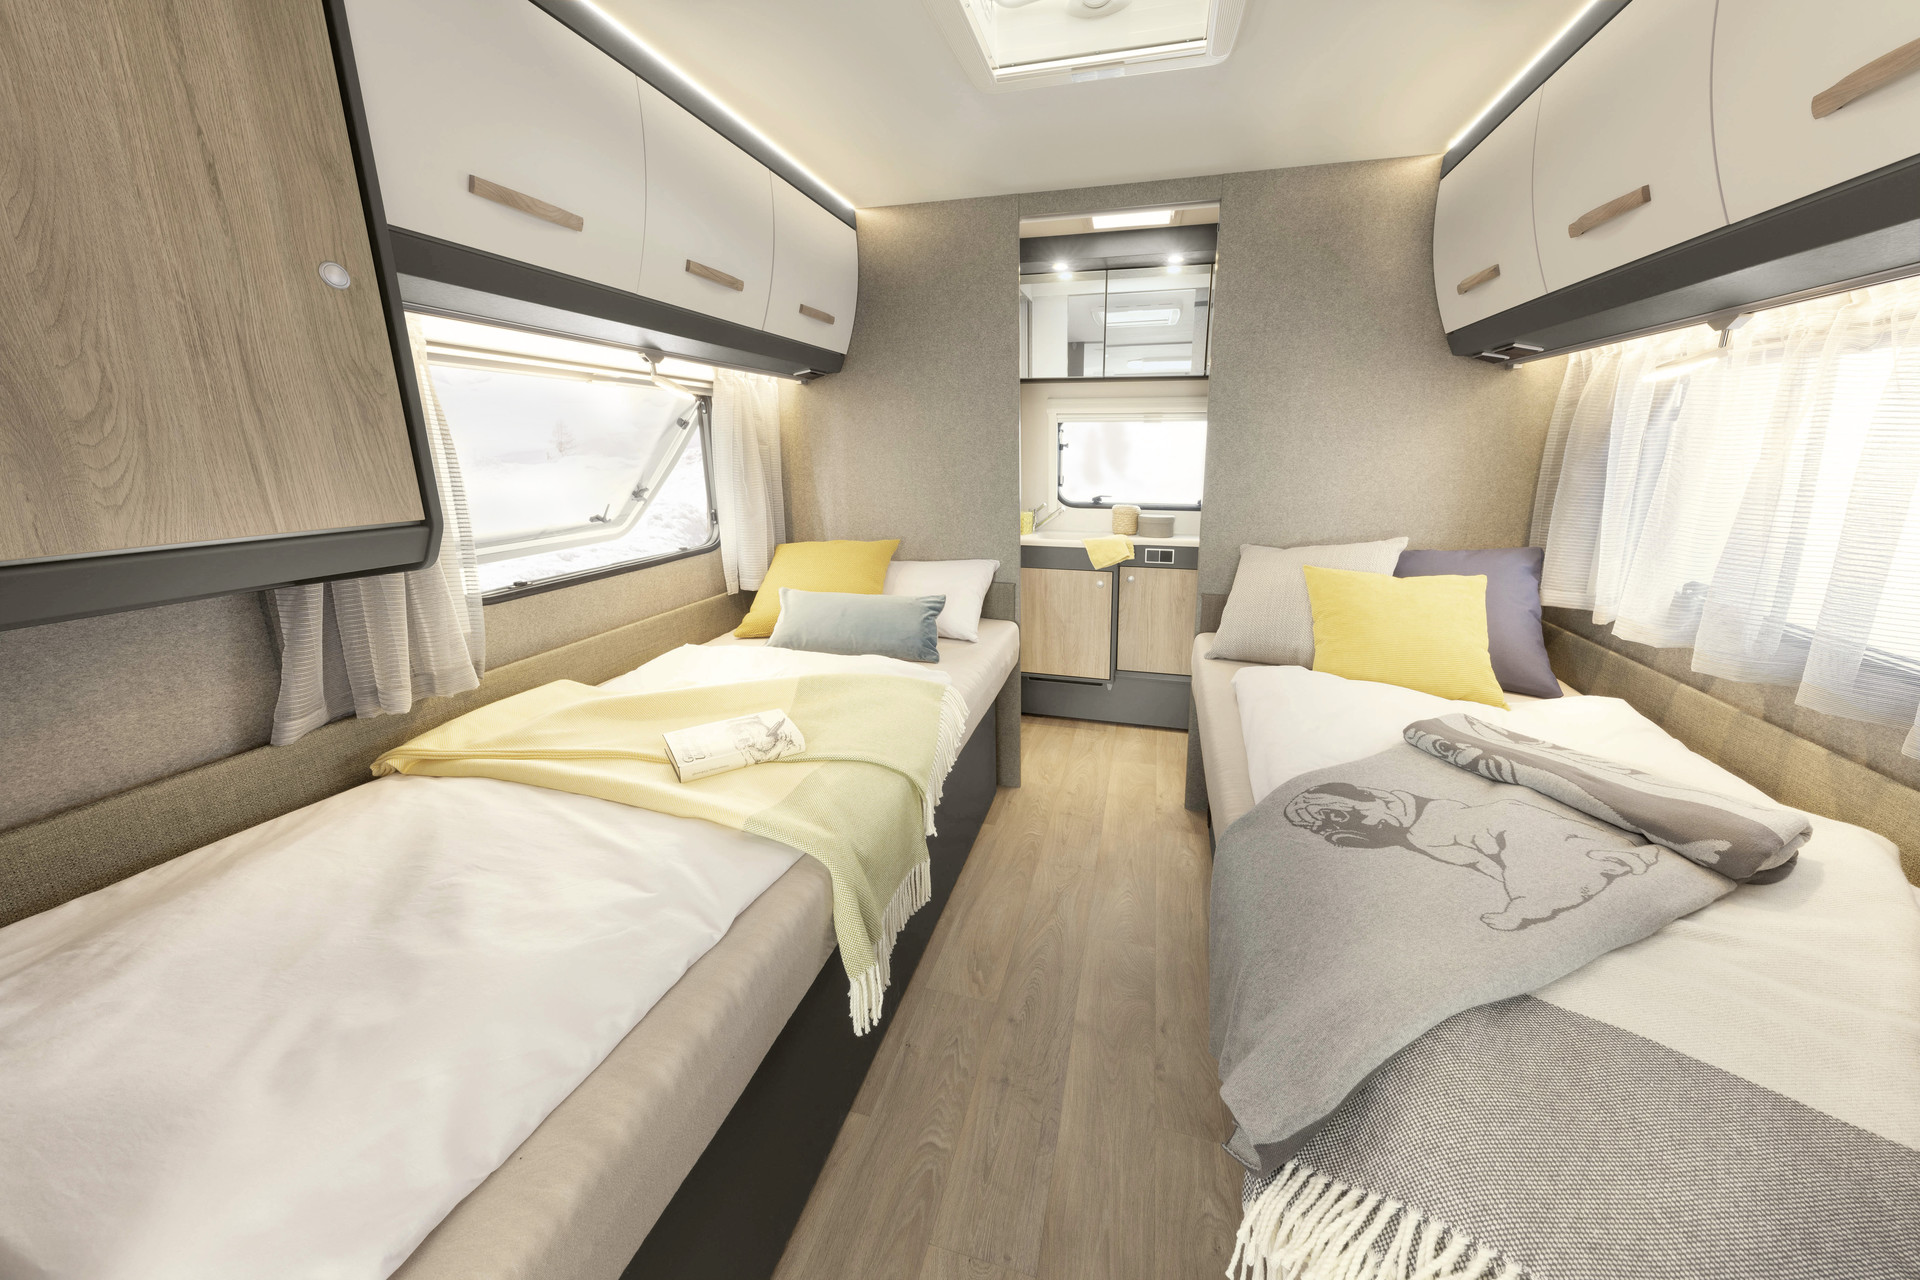 The comfortable single beds promise a restful night's sleep. The adjoining generous bathroom stretches across the full width of the vehicle • 670 BET | Tarragona